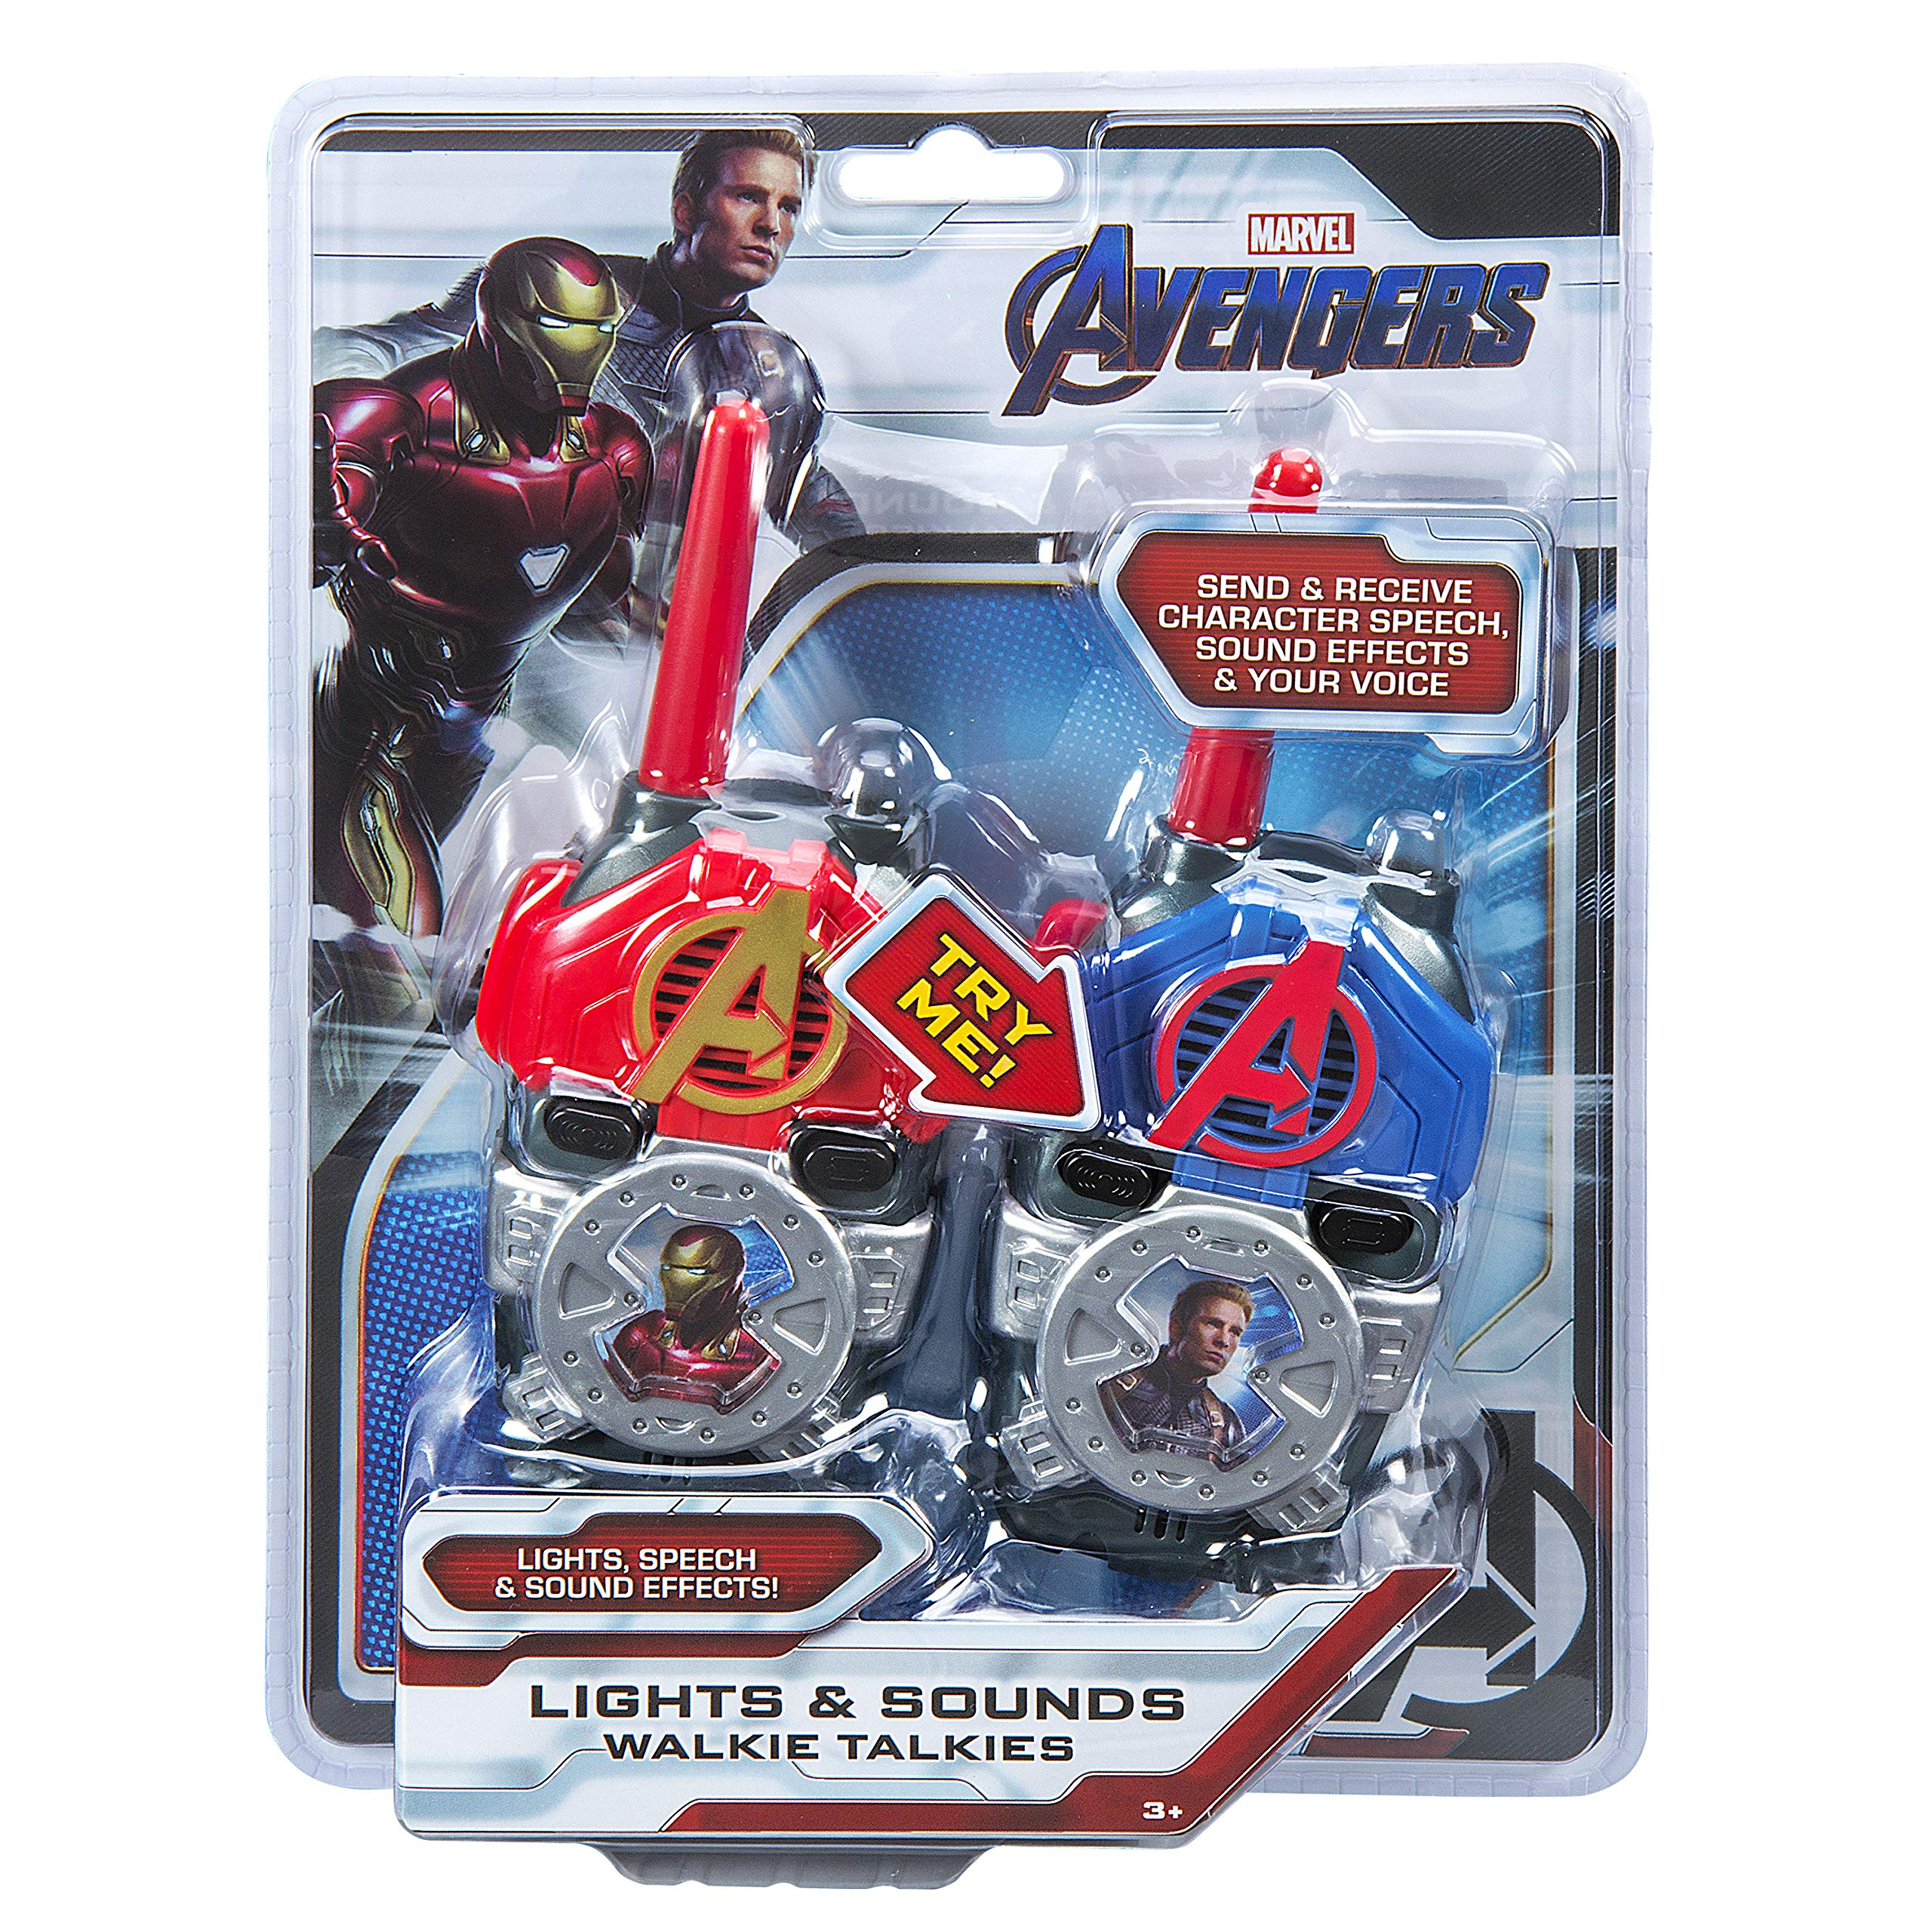 eKids Avengers Endgame FRS Walkie Talkies with Lights & Sounds Kid Friendly Easy to Use by eKids (Image #5)